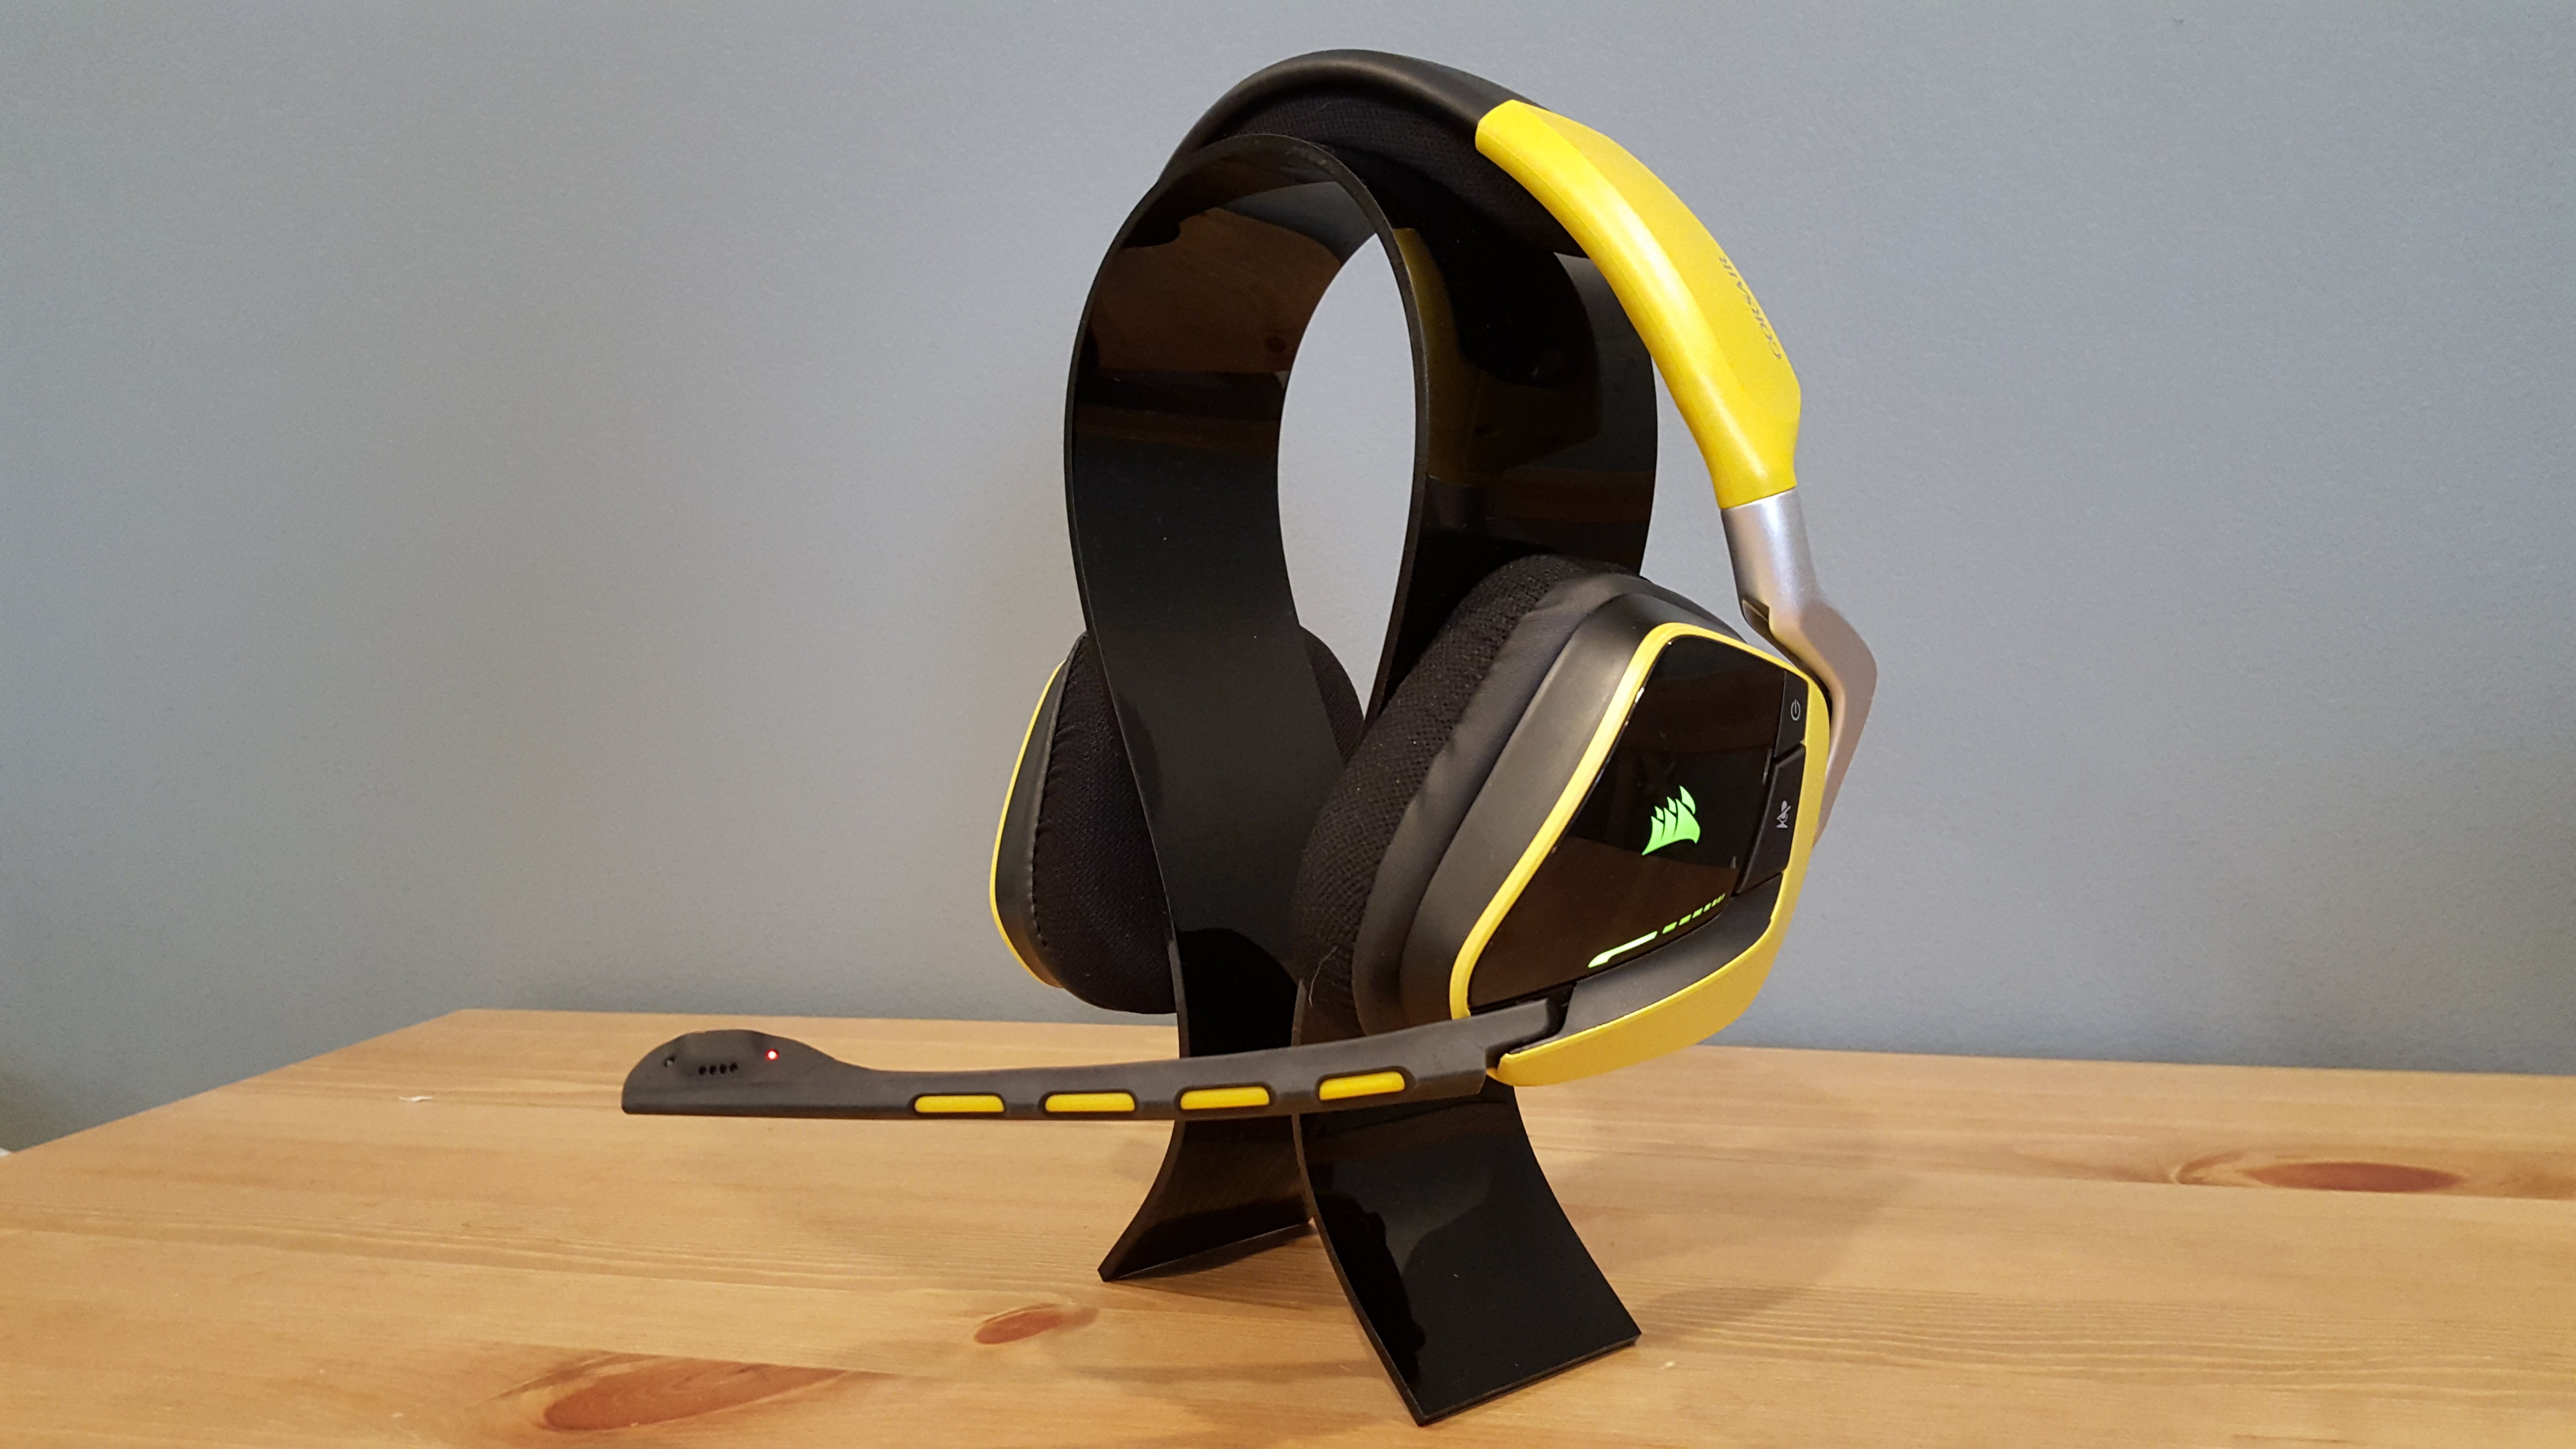 Corsair Void Wireless review: This headset is your best bet if you ...